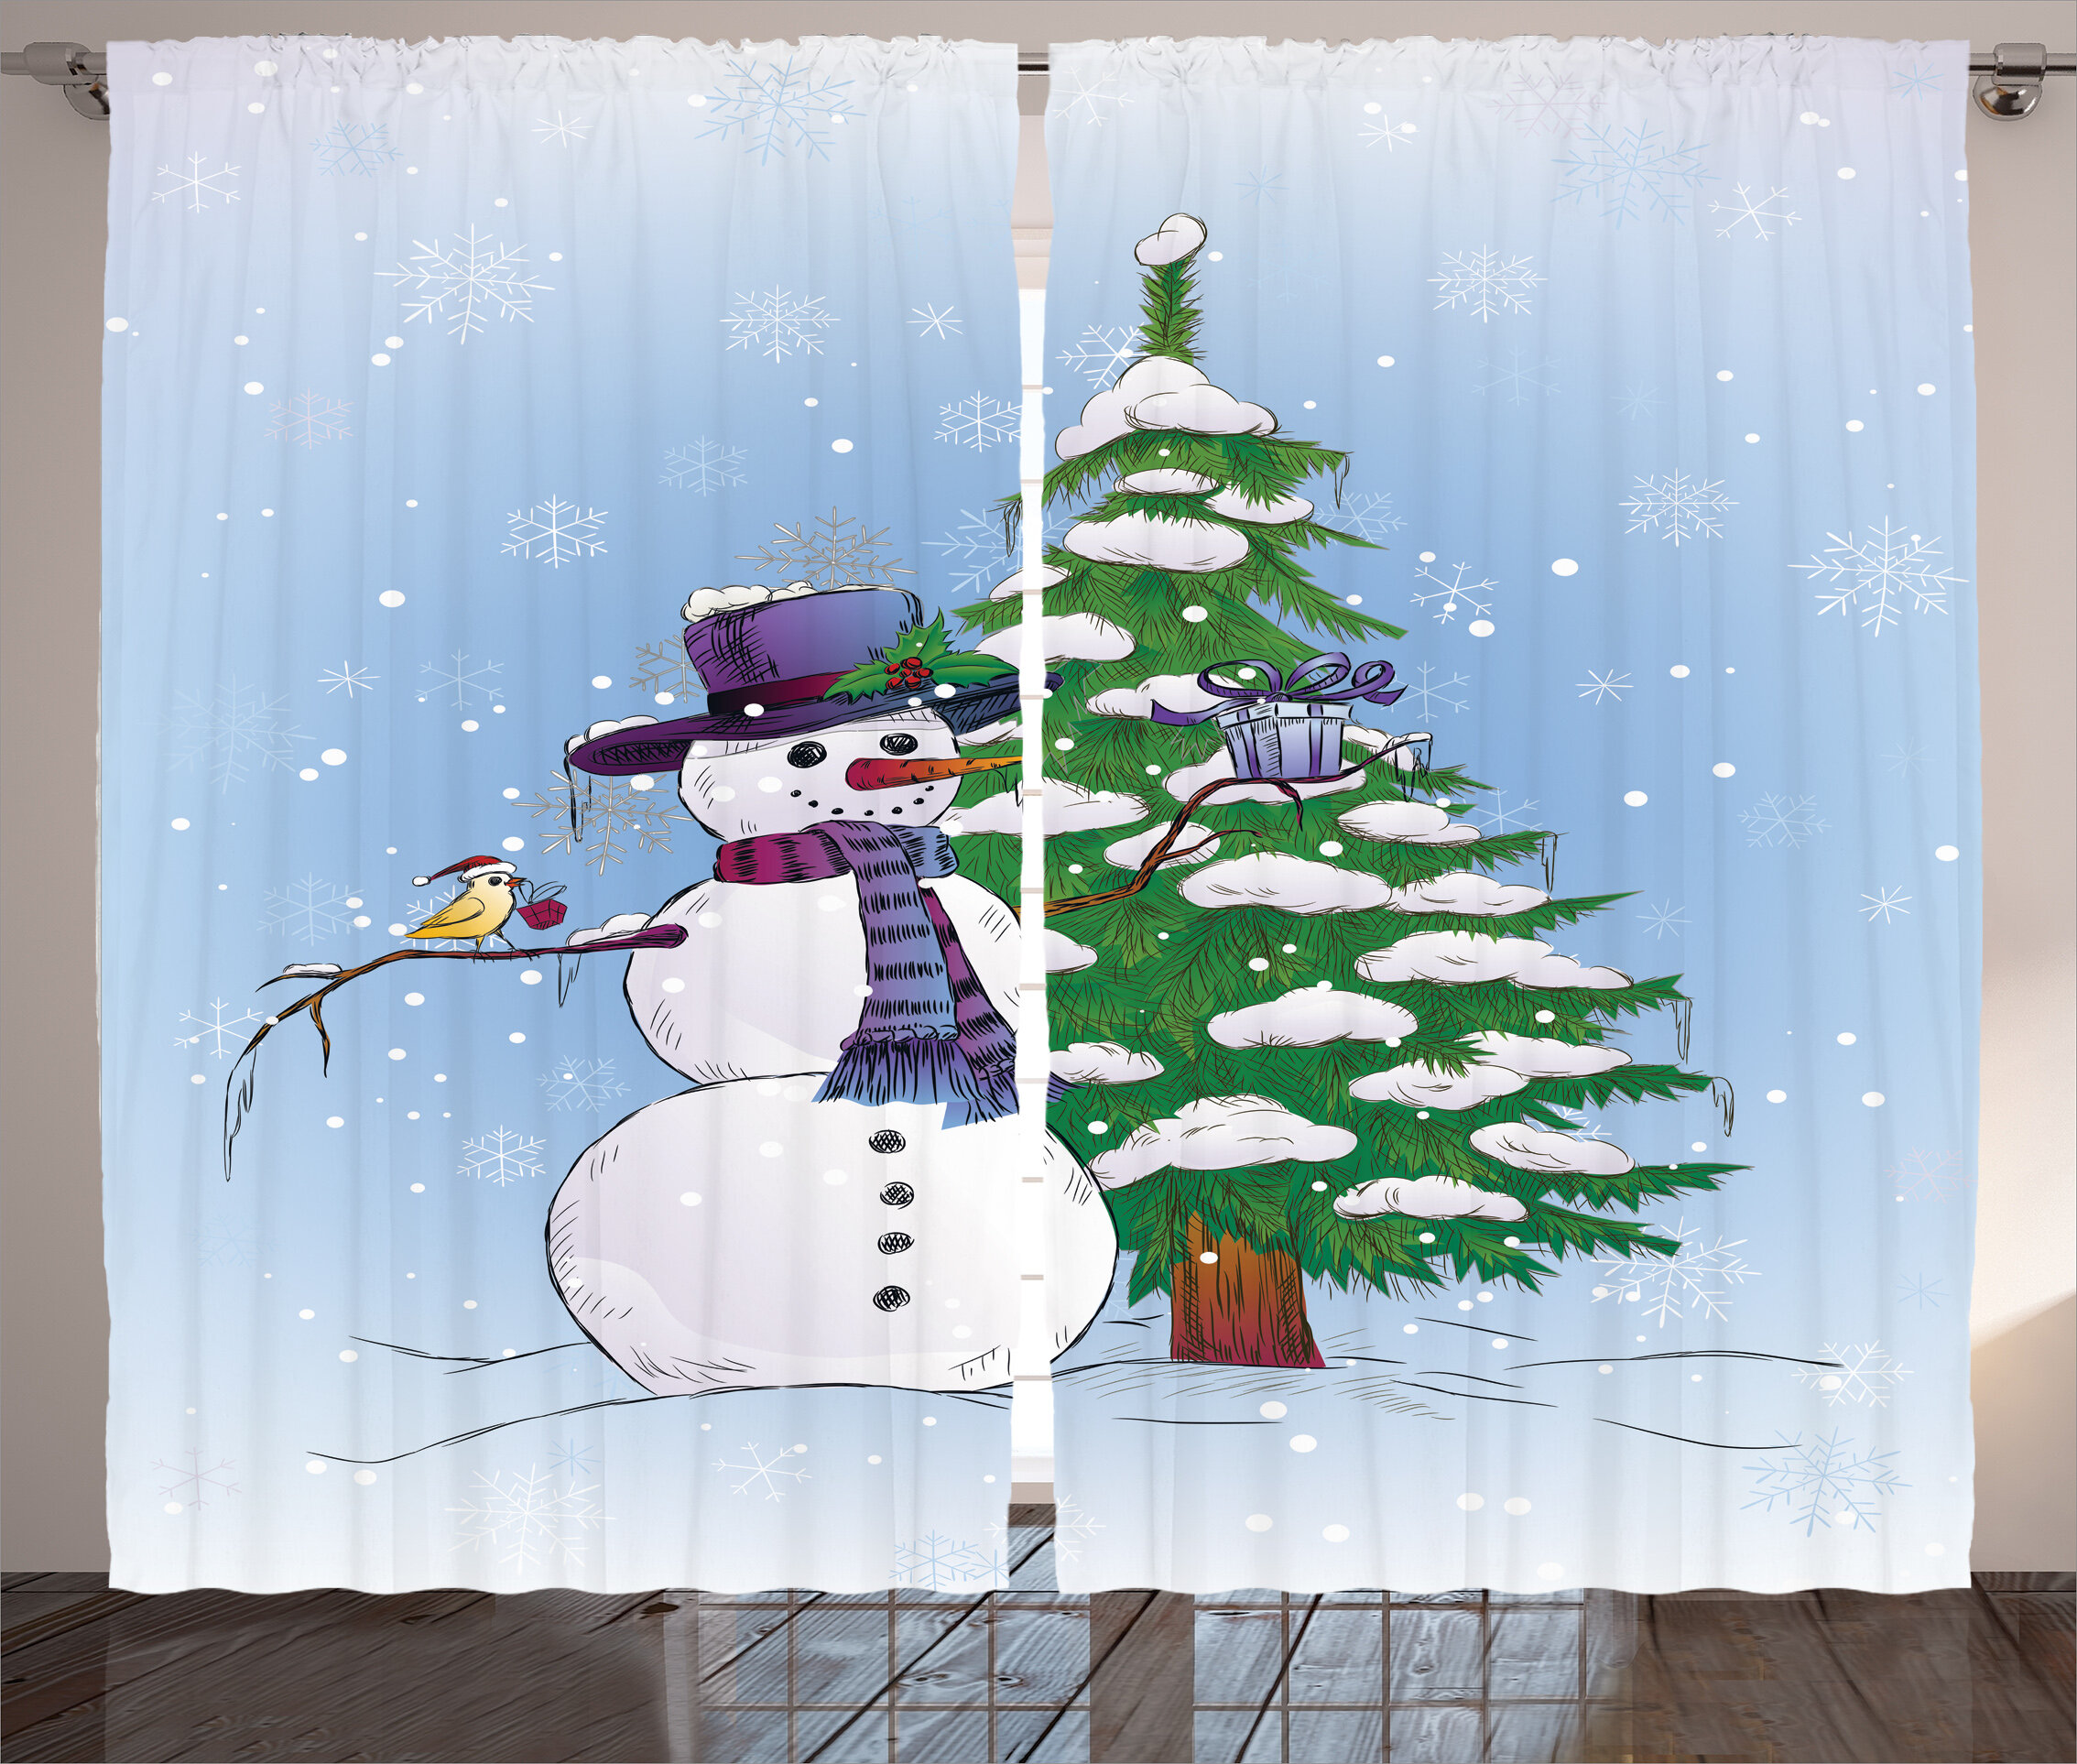 The Holiday Aisle Christmas Decorations Snowman in Winter with Mistletoe Gift Top Hat and Scarf Tree and Bird Graphic Print & Text Semi-Sheer Rod Pocket ...